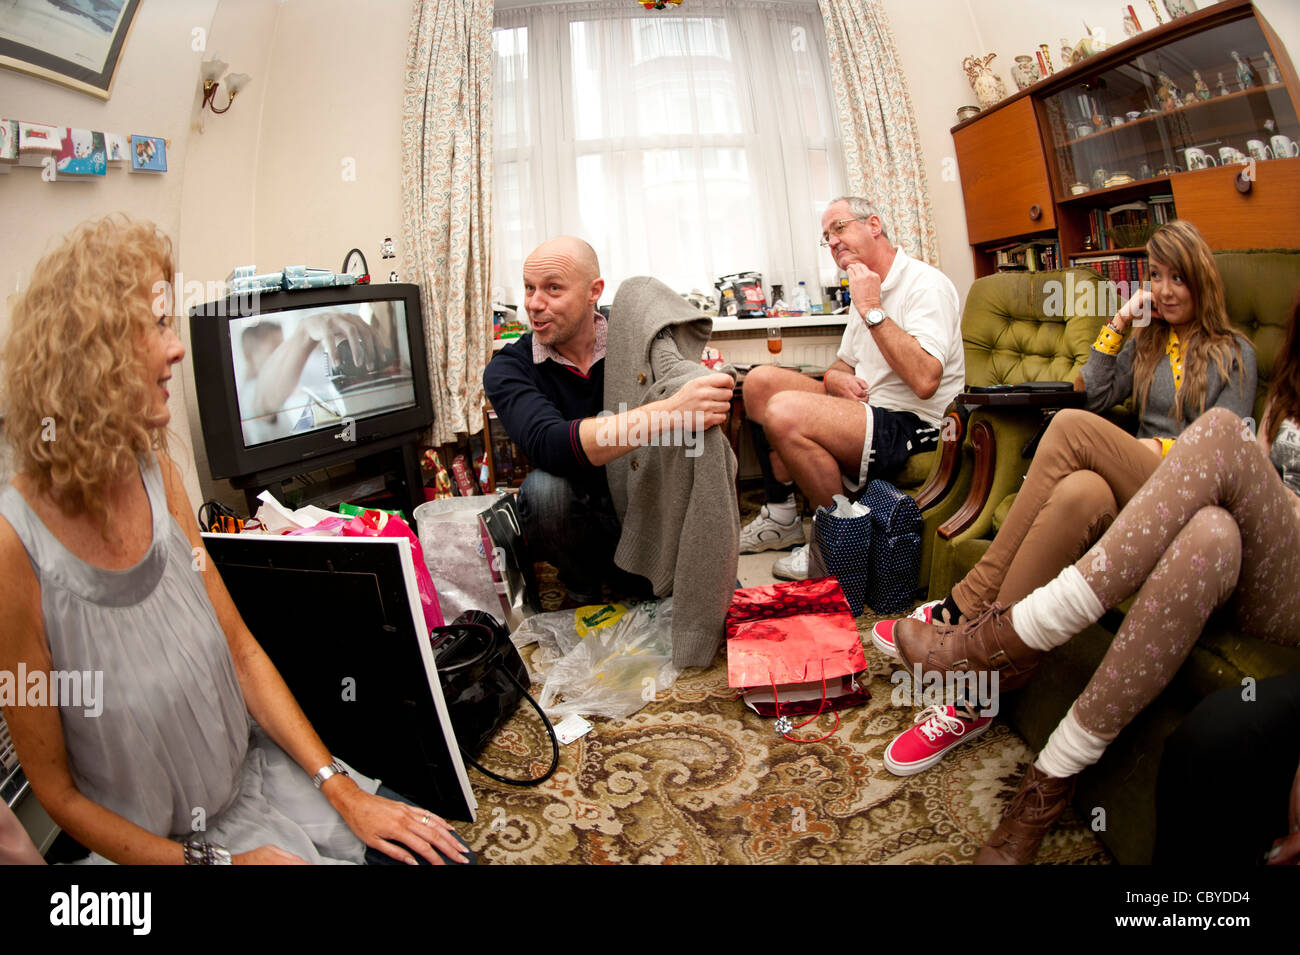 Christmas day 2011, A family unwrapping their presents. uk - Stock Image